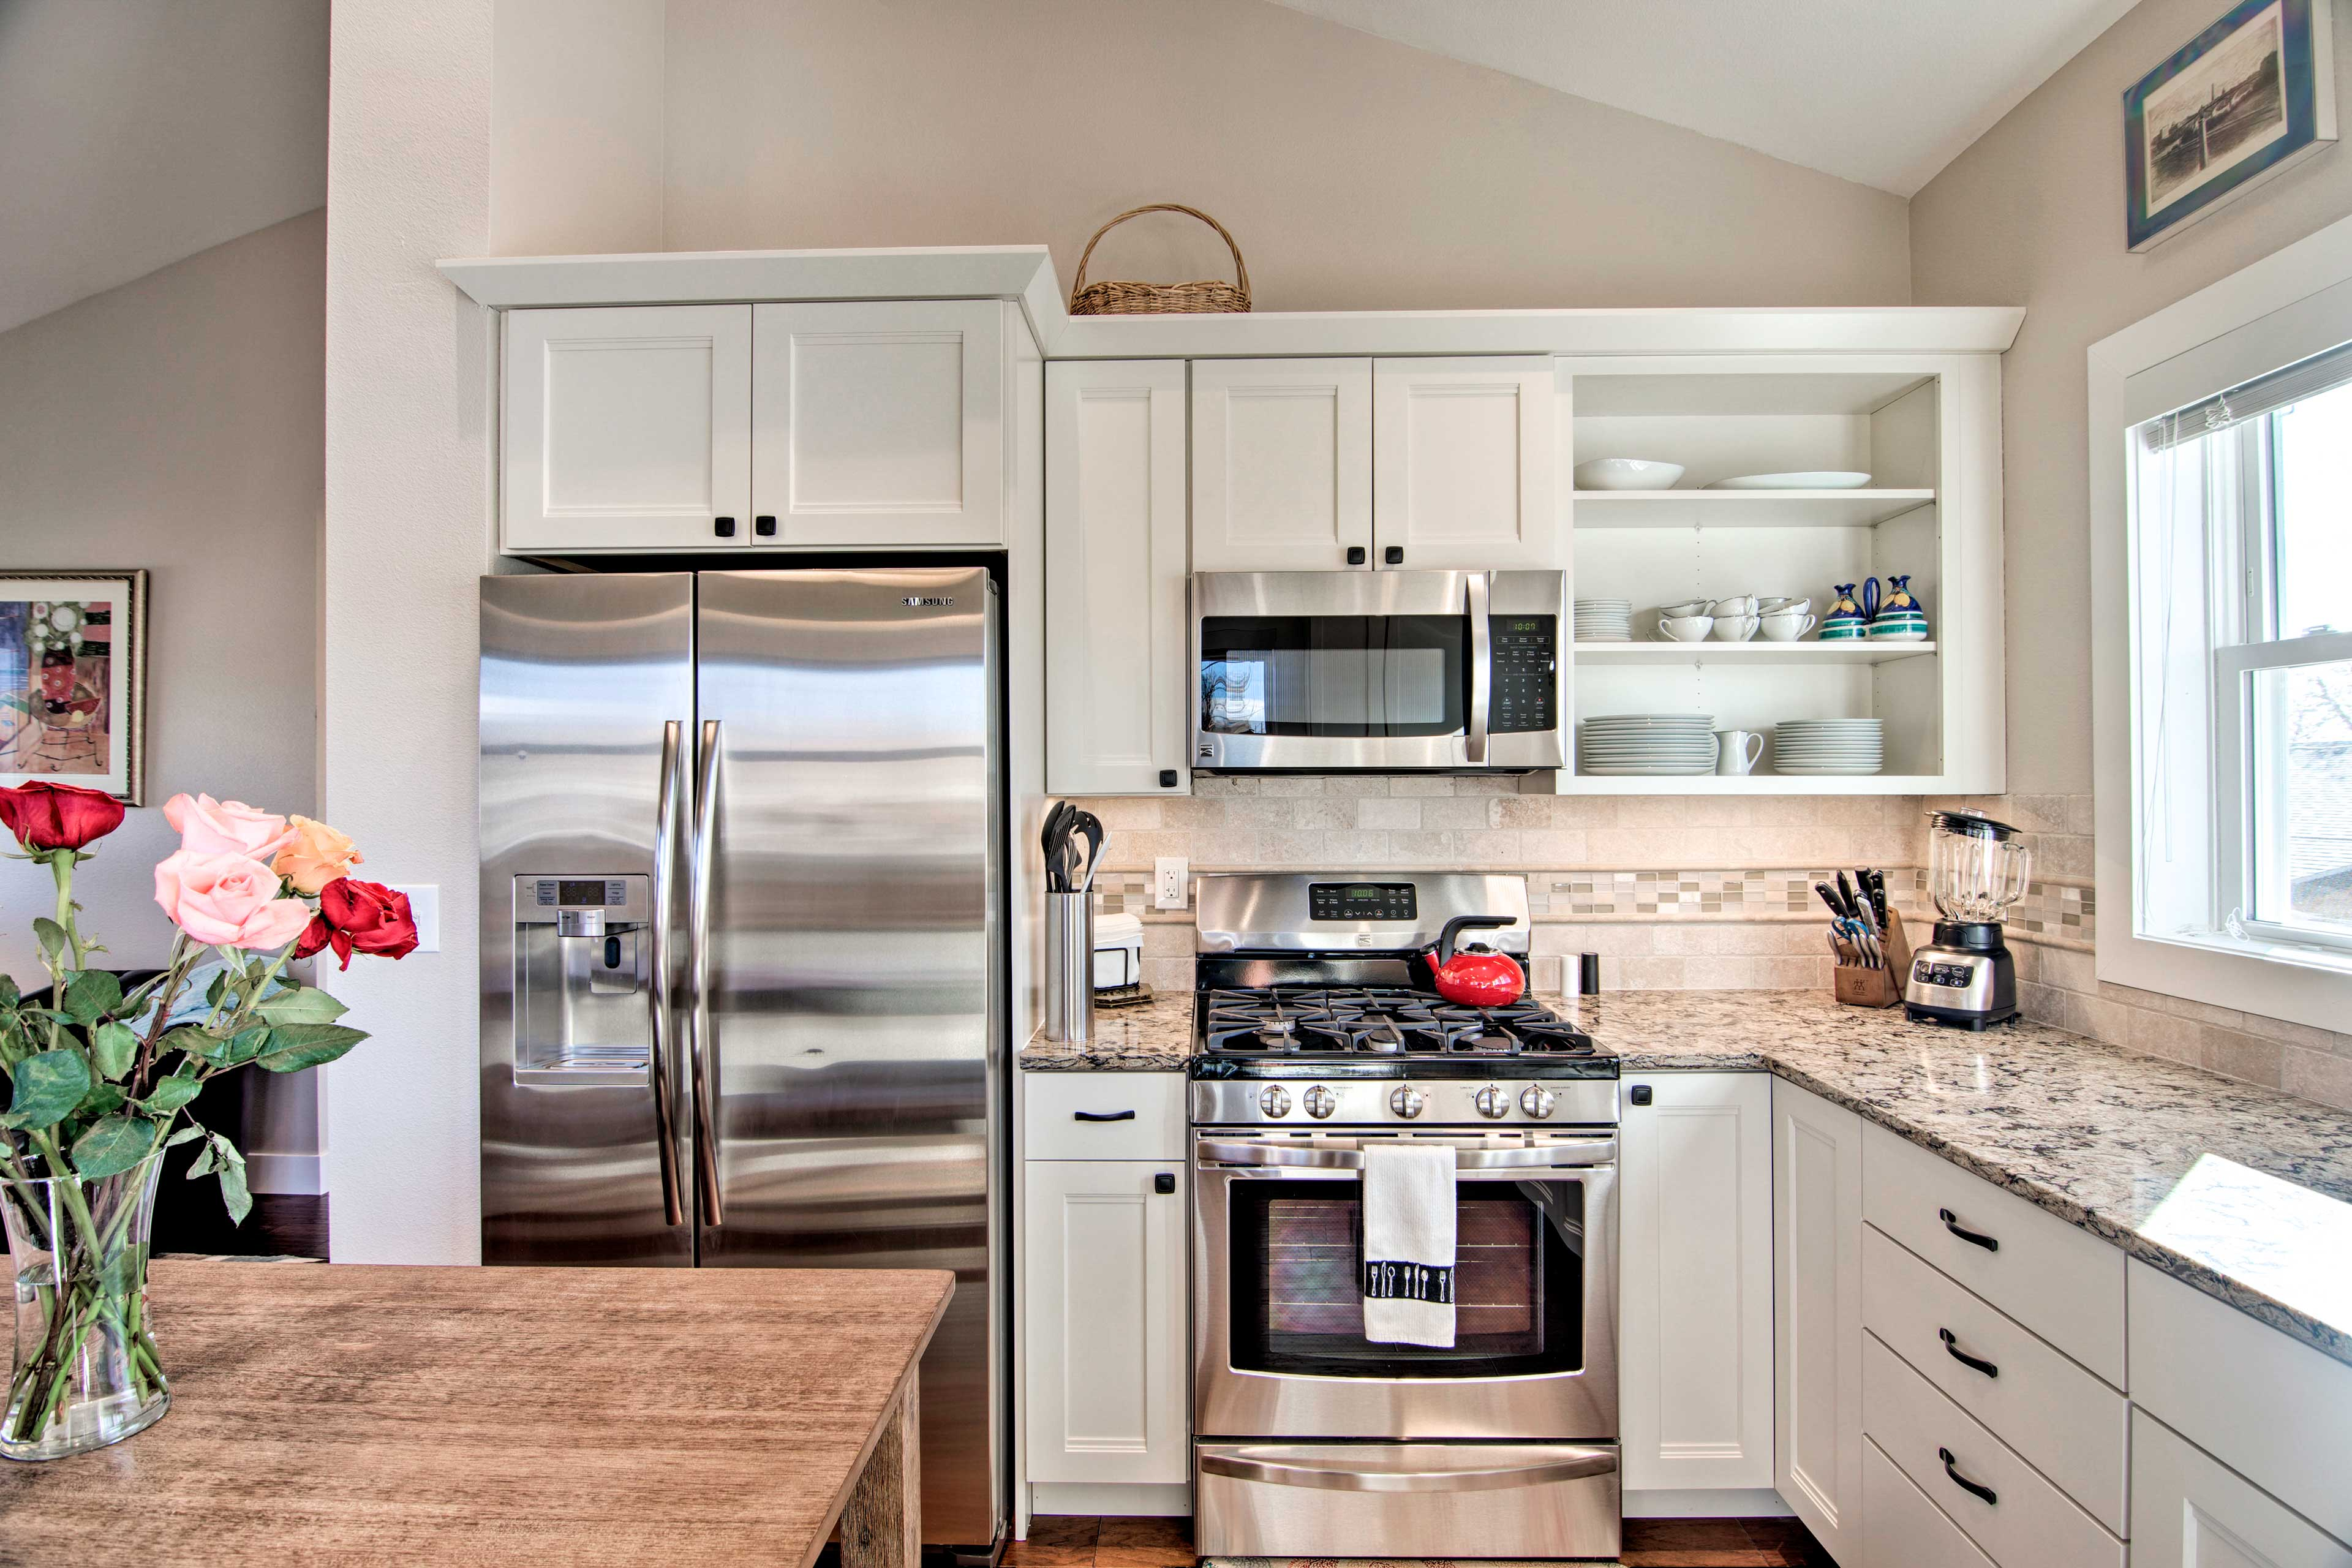 Stainless steel appliances will make cooking a breeze.